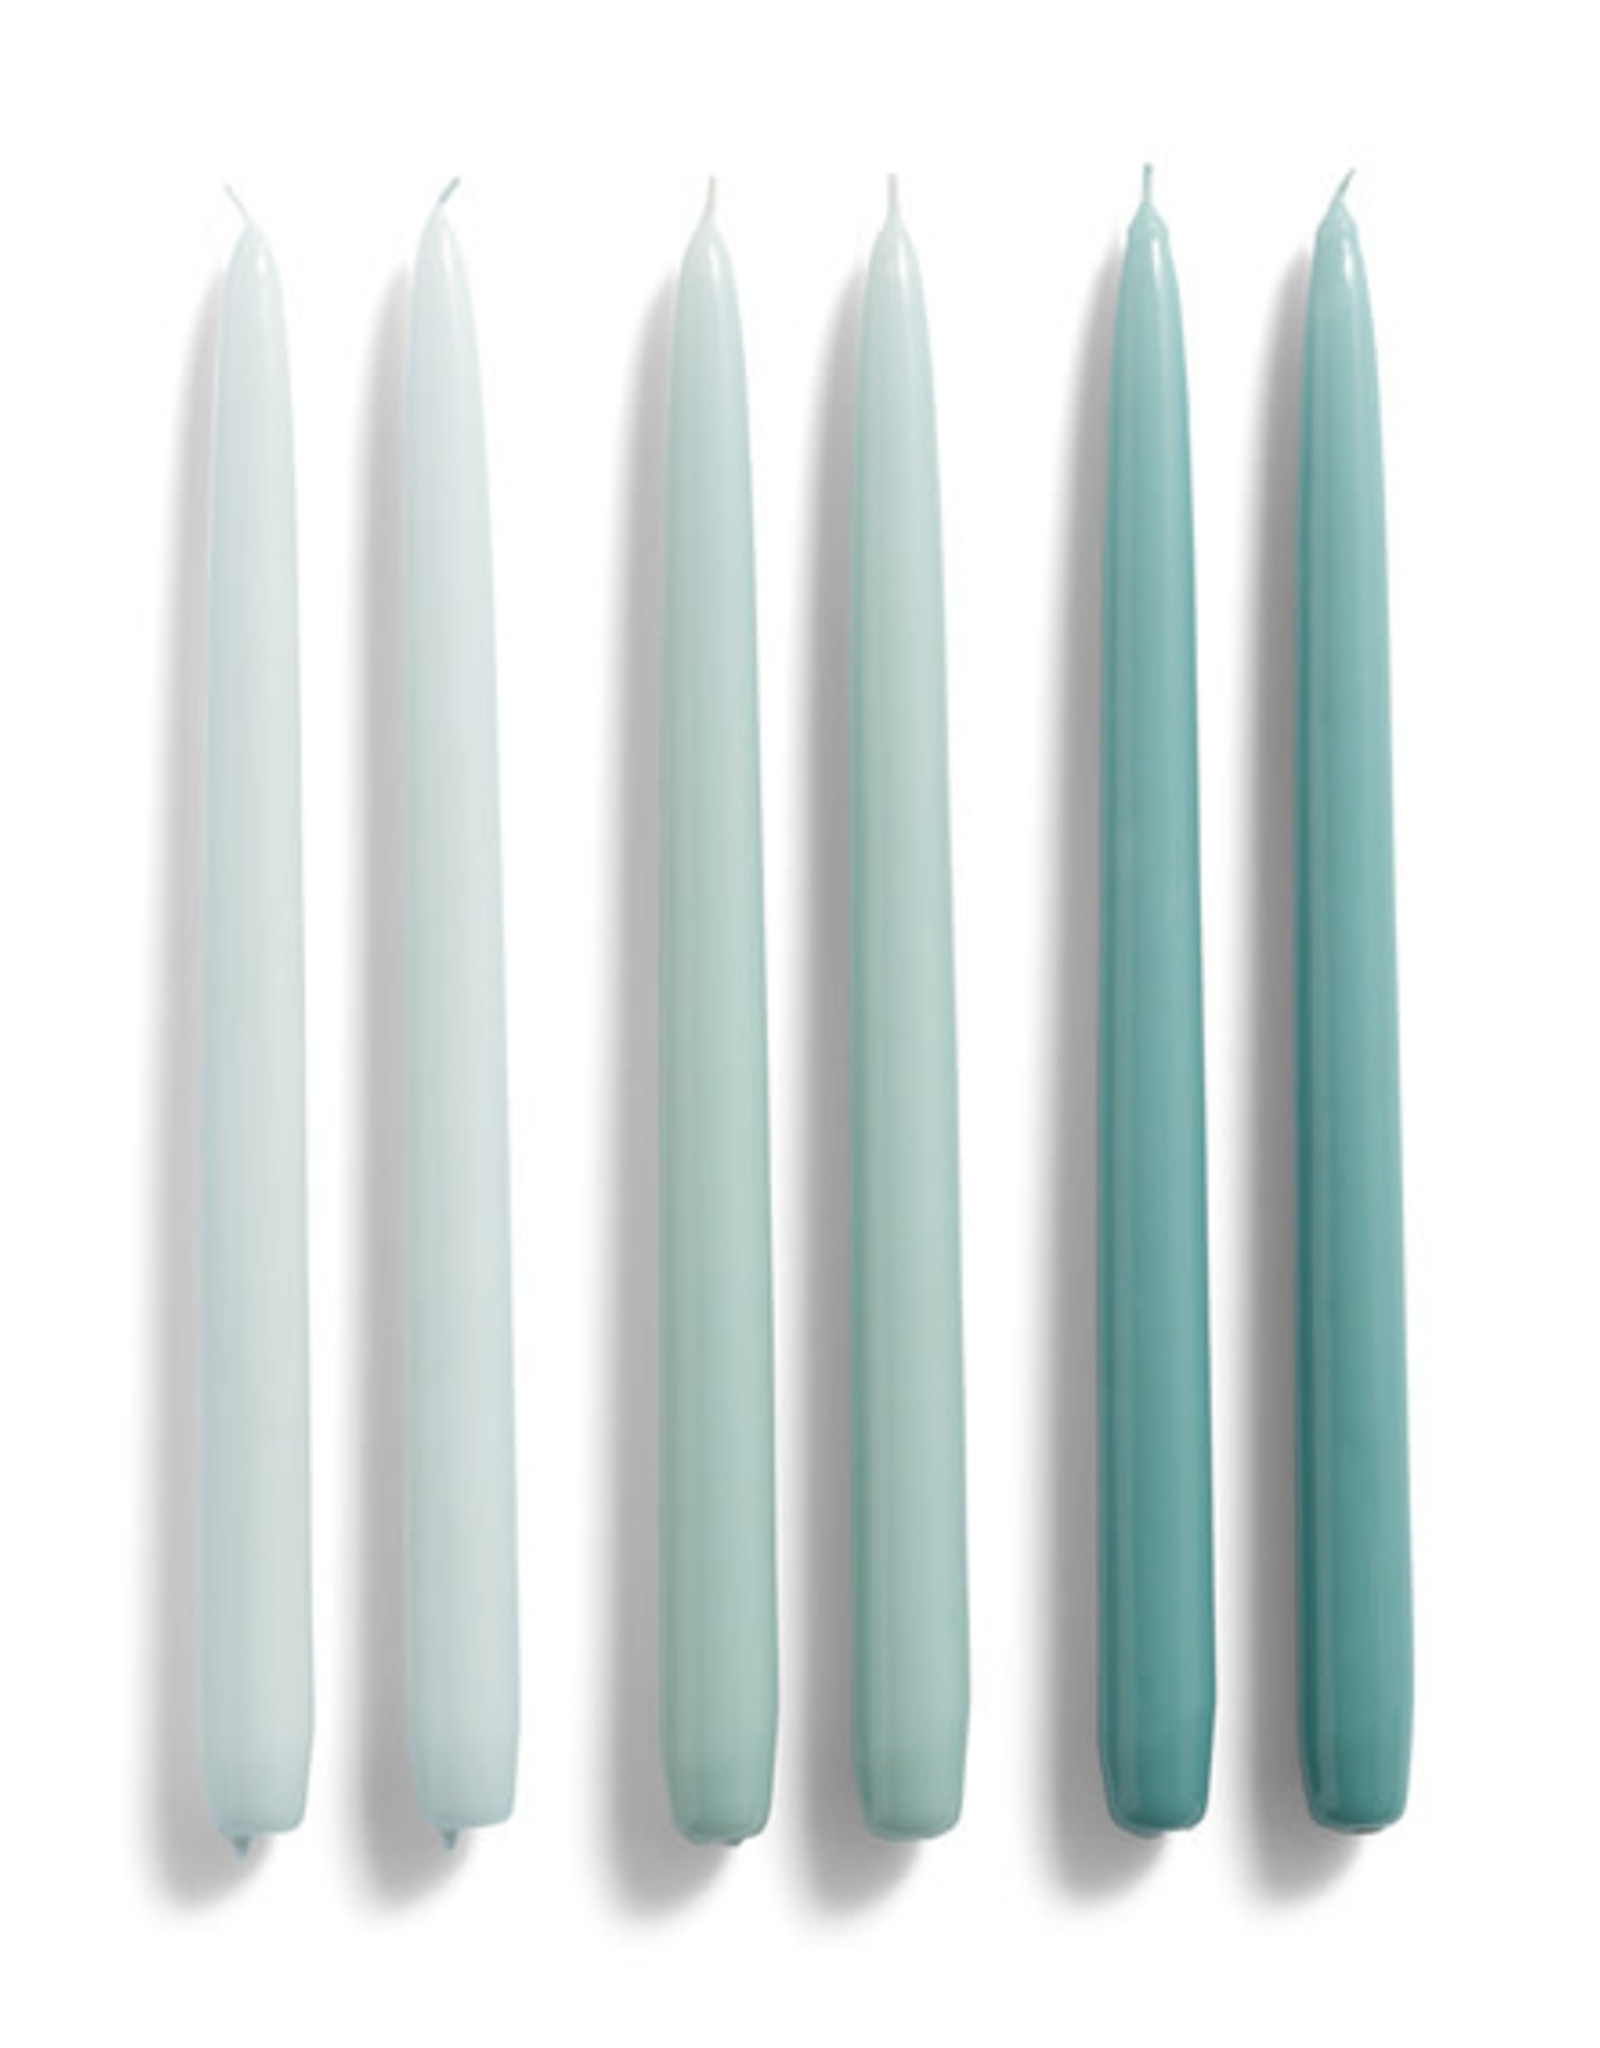 HAY HAY Candle Conical set of 6 Ice Blue Arctic Blue Teal